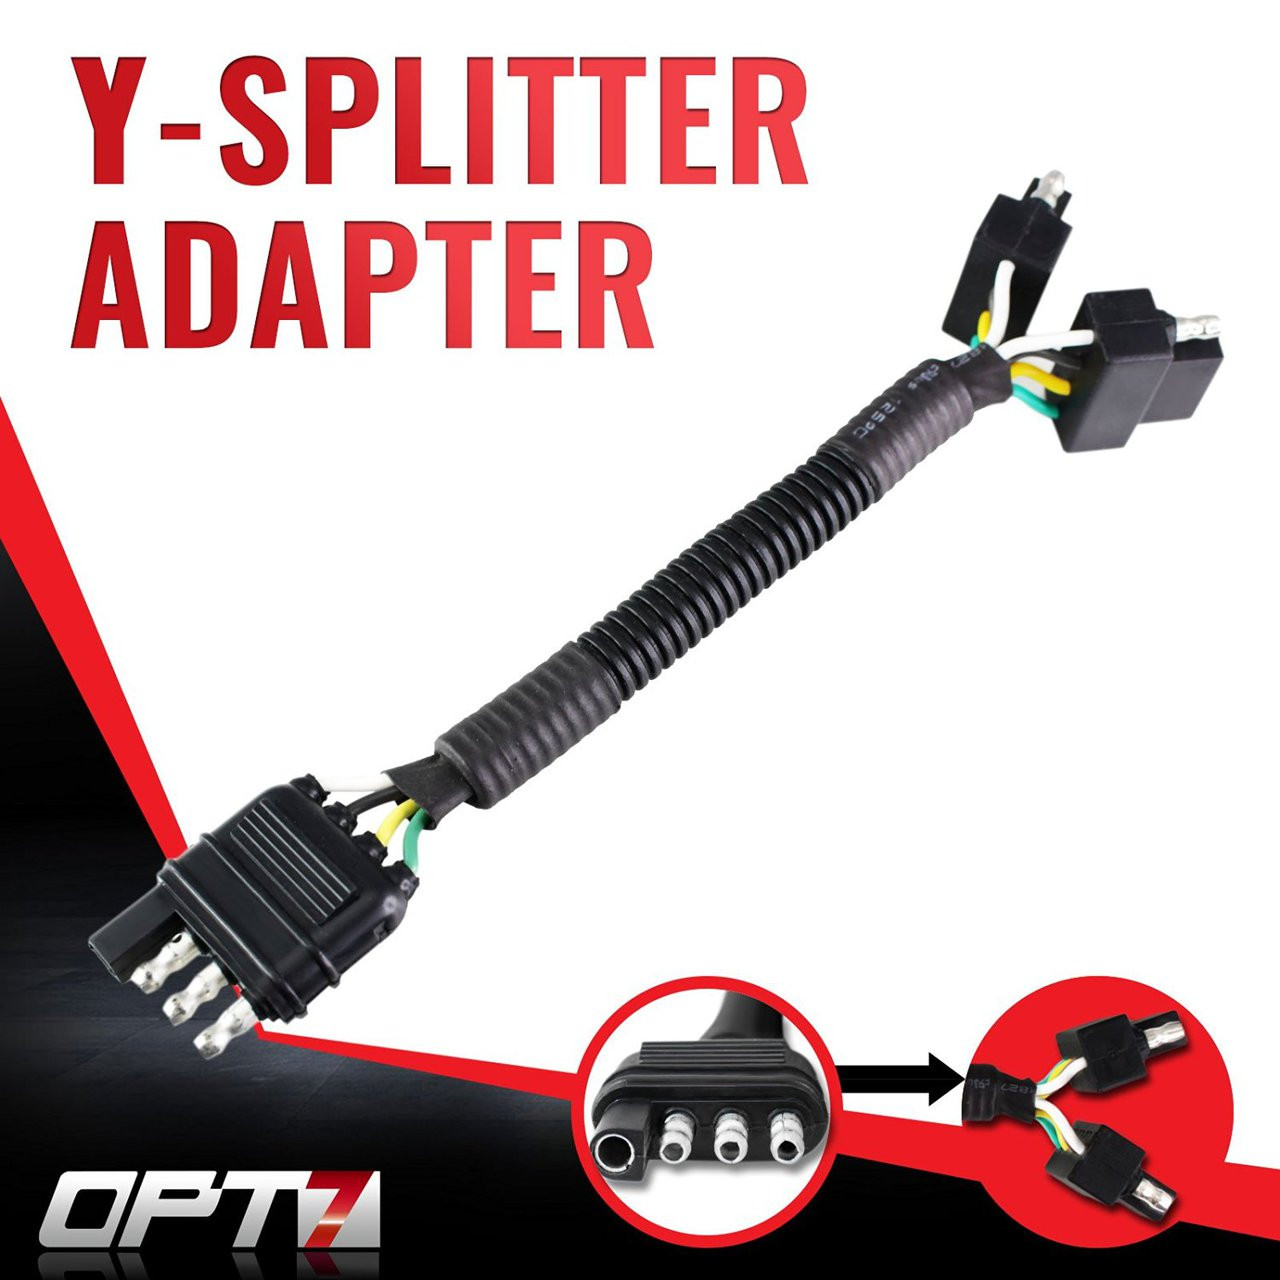 hight resolution of y splitter 4 tow pin connector adapter harness wiring for truck tailgate opt7